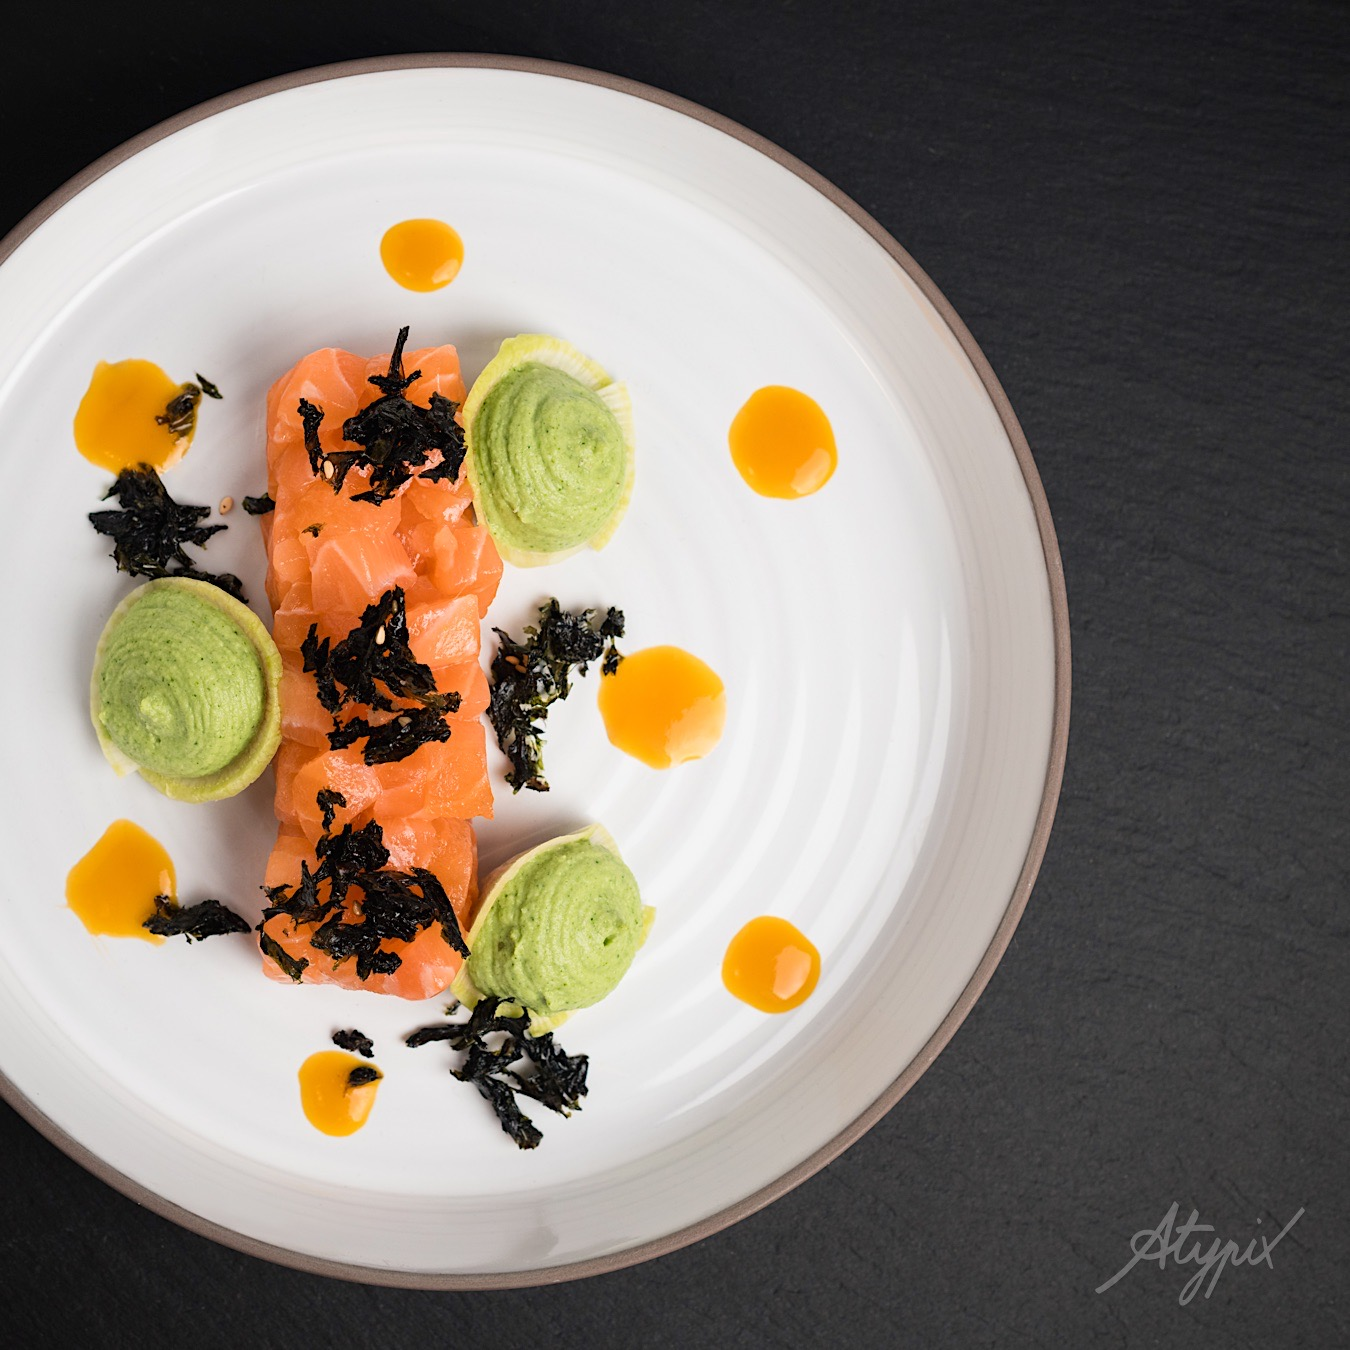 shooting culinaire restaurant